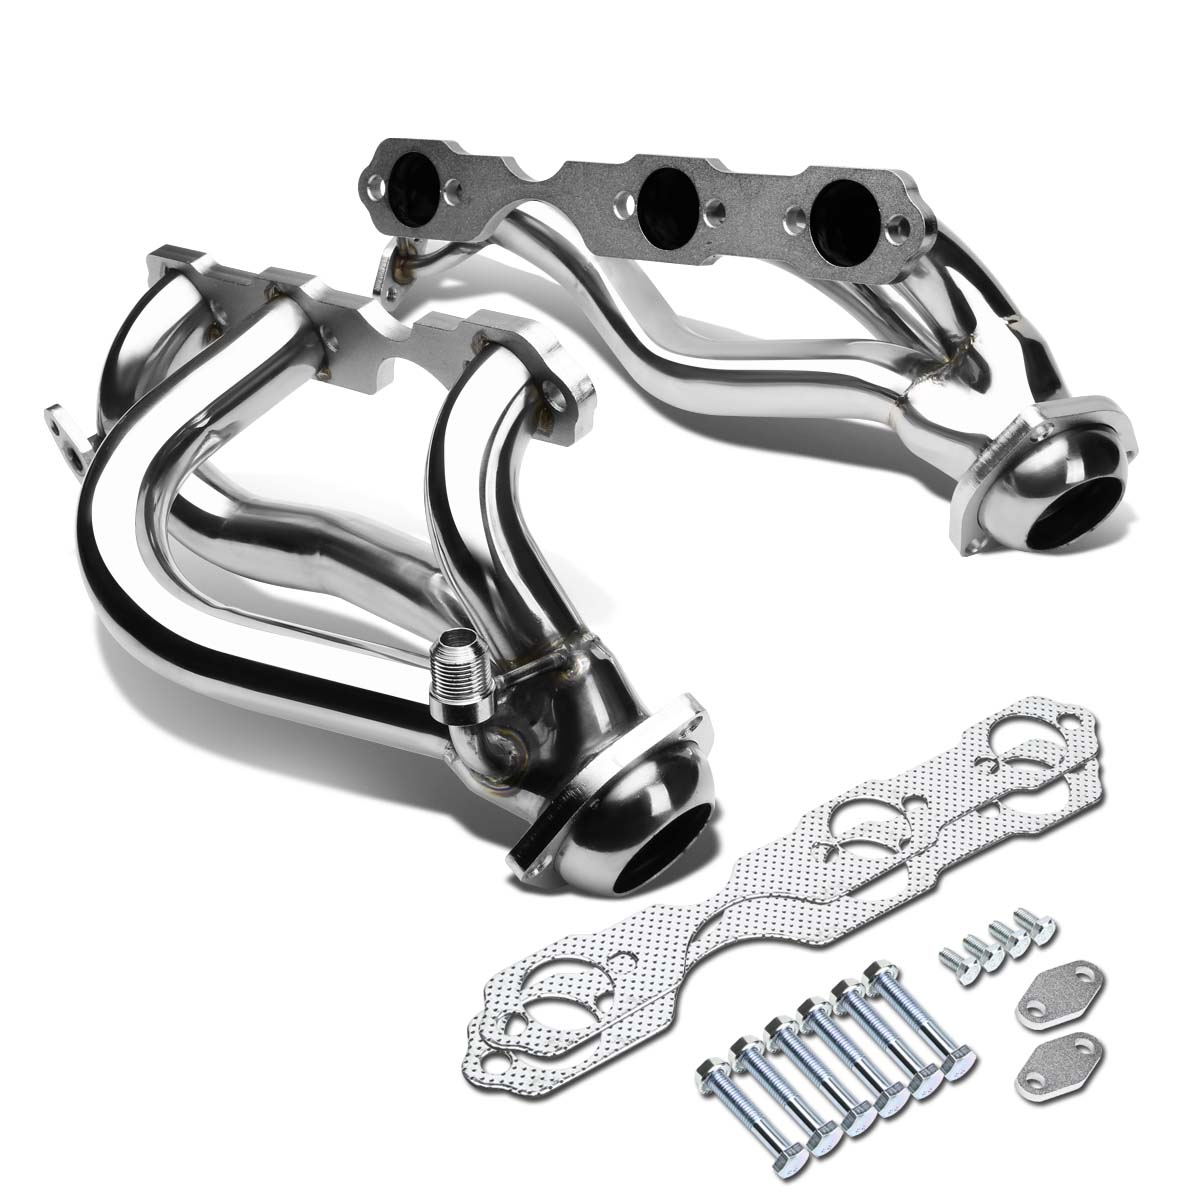 For 96-01 Chevy S10/Blazer 3-1 Design 2-PC Stainless Steel Exhaust Header Kit - V6 4.3L 97 98 99 00